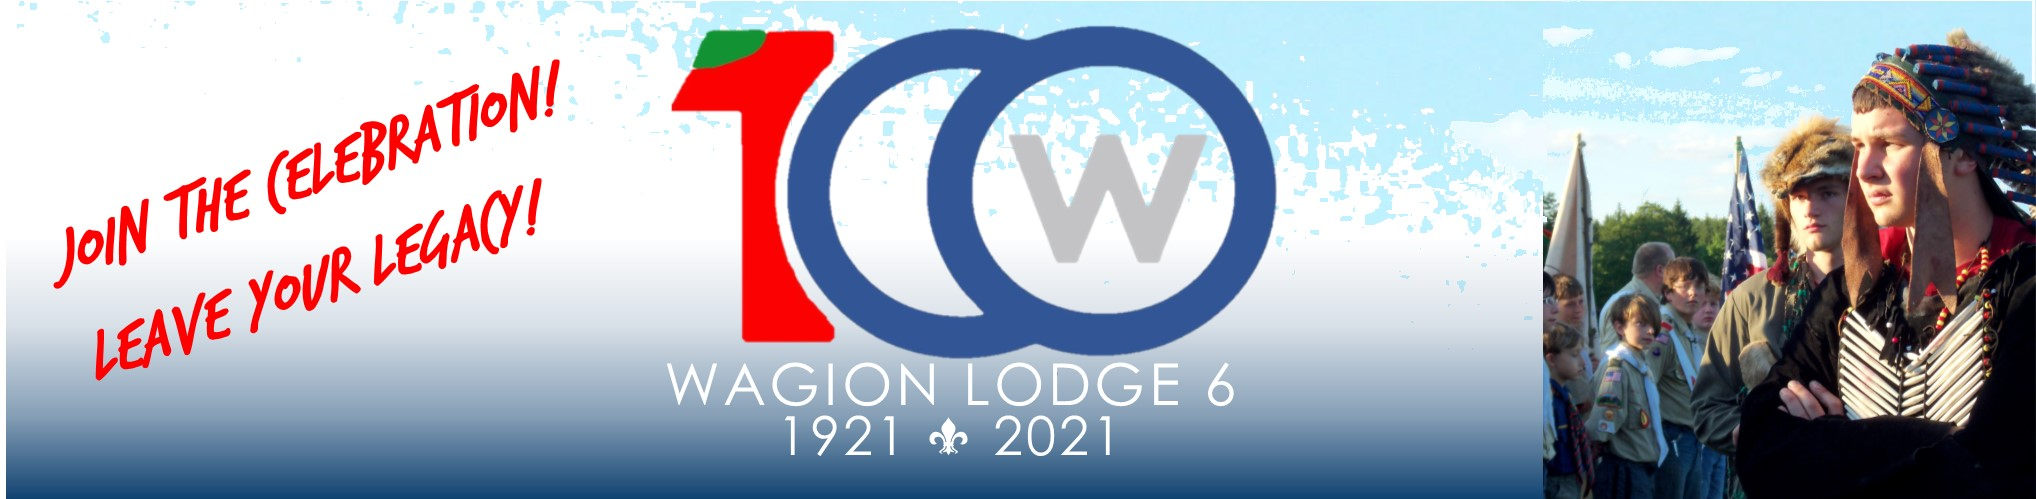 Wagion Lodge #6